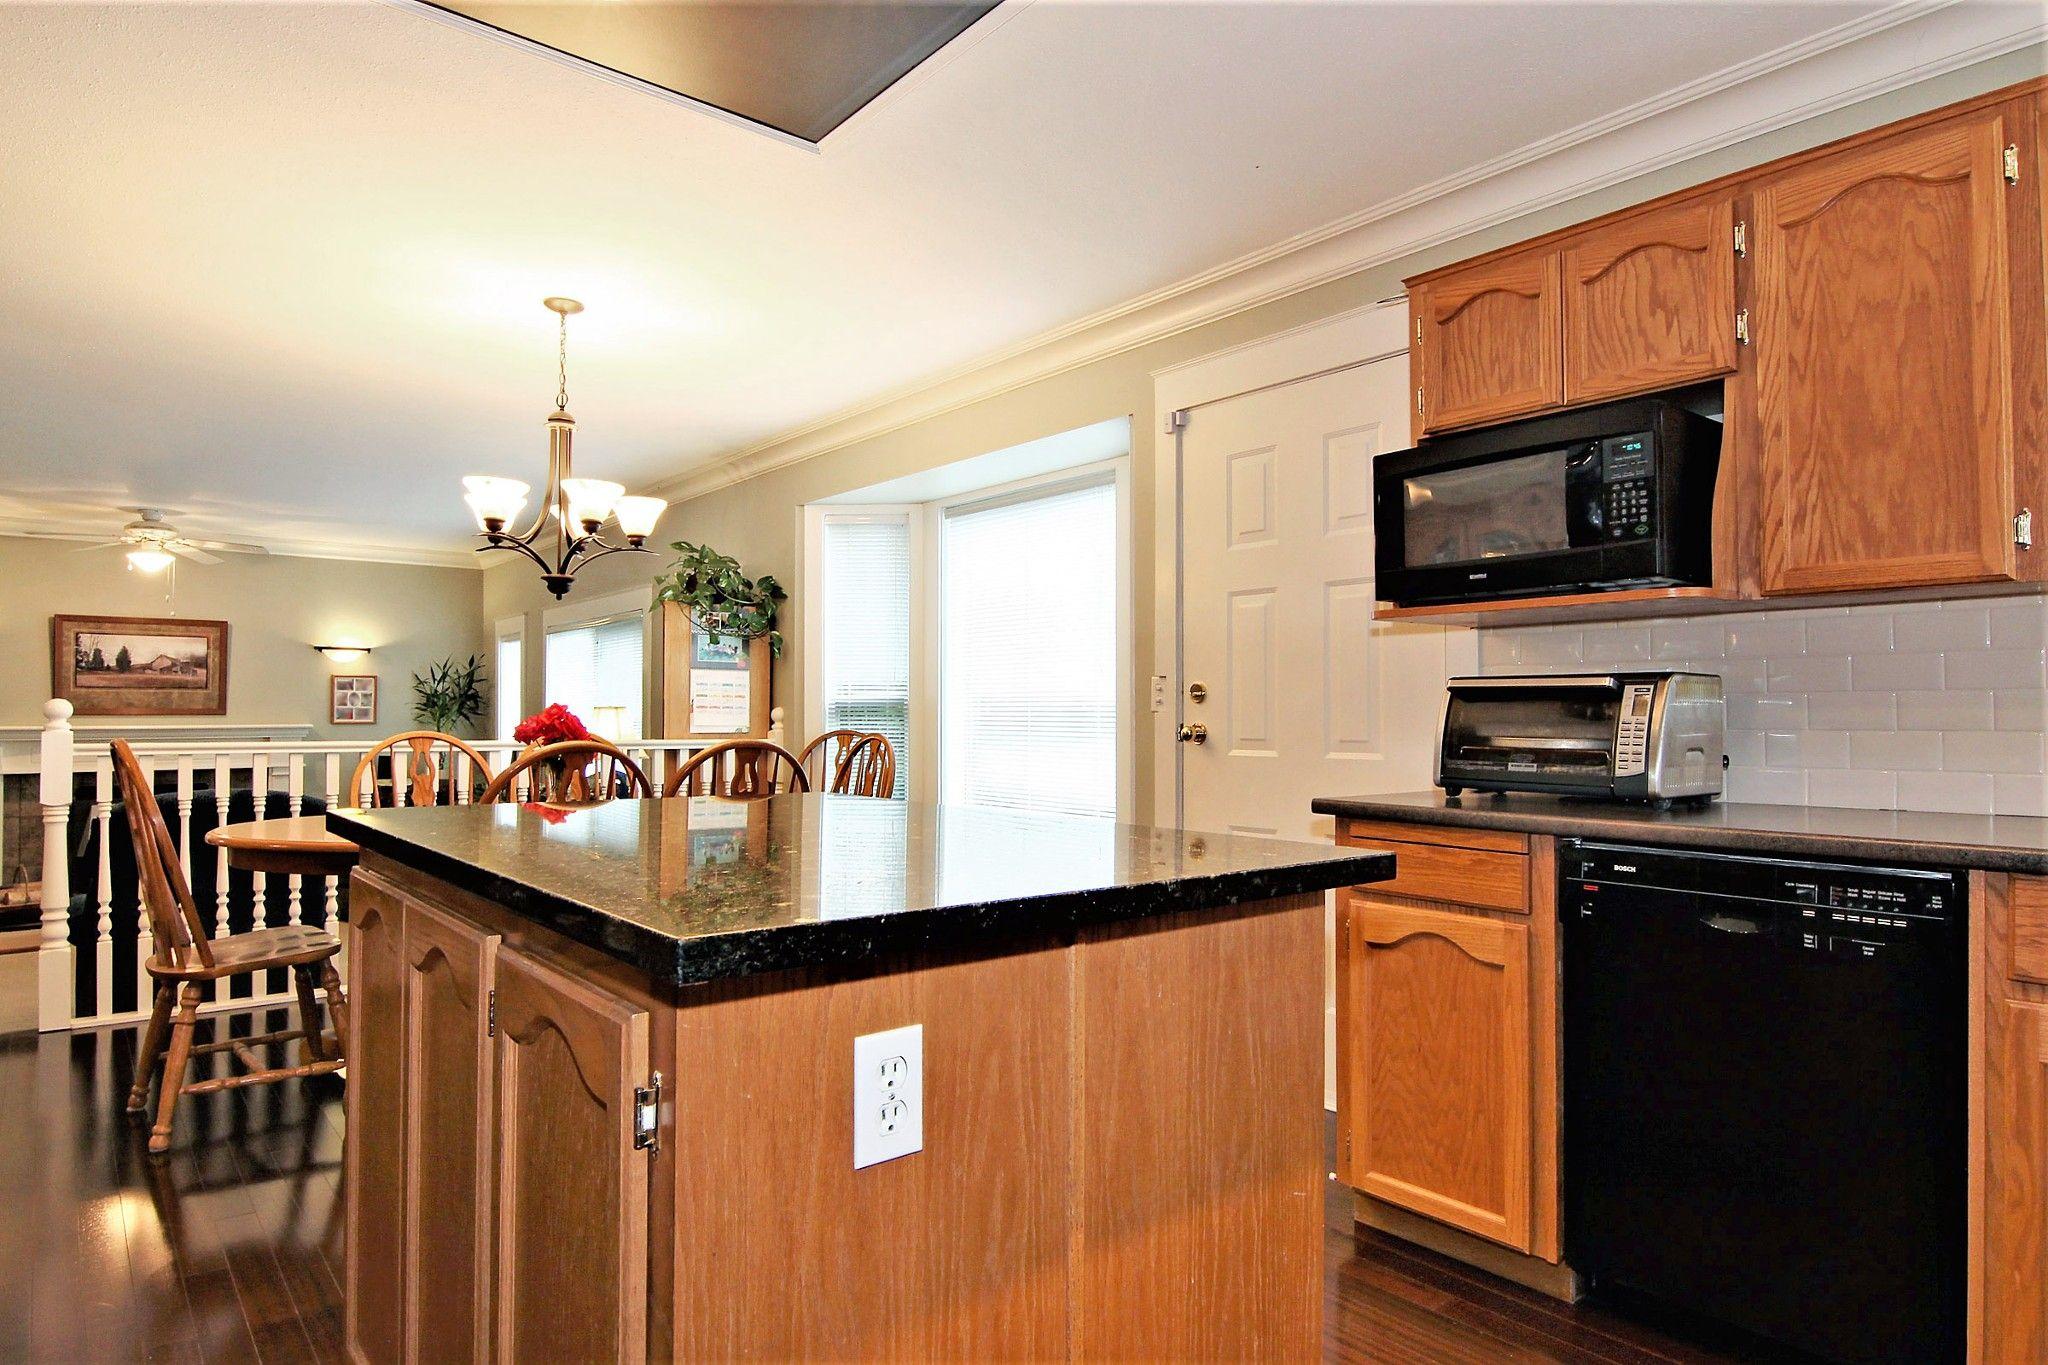 Photo 6: Photos: 2946 CARDINAL Place in Abbotsford: Abbotsford West House for sale : MLS®# R2384404